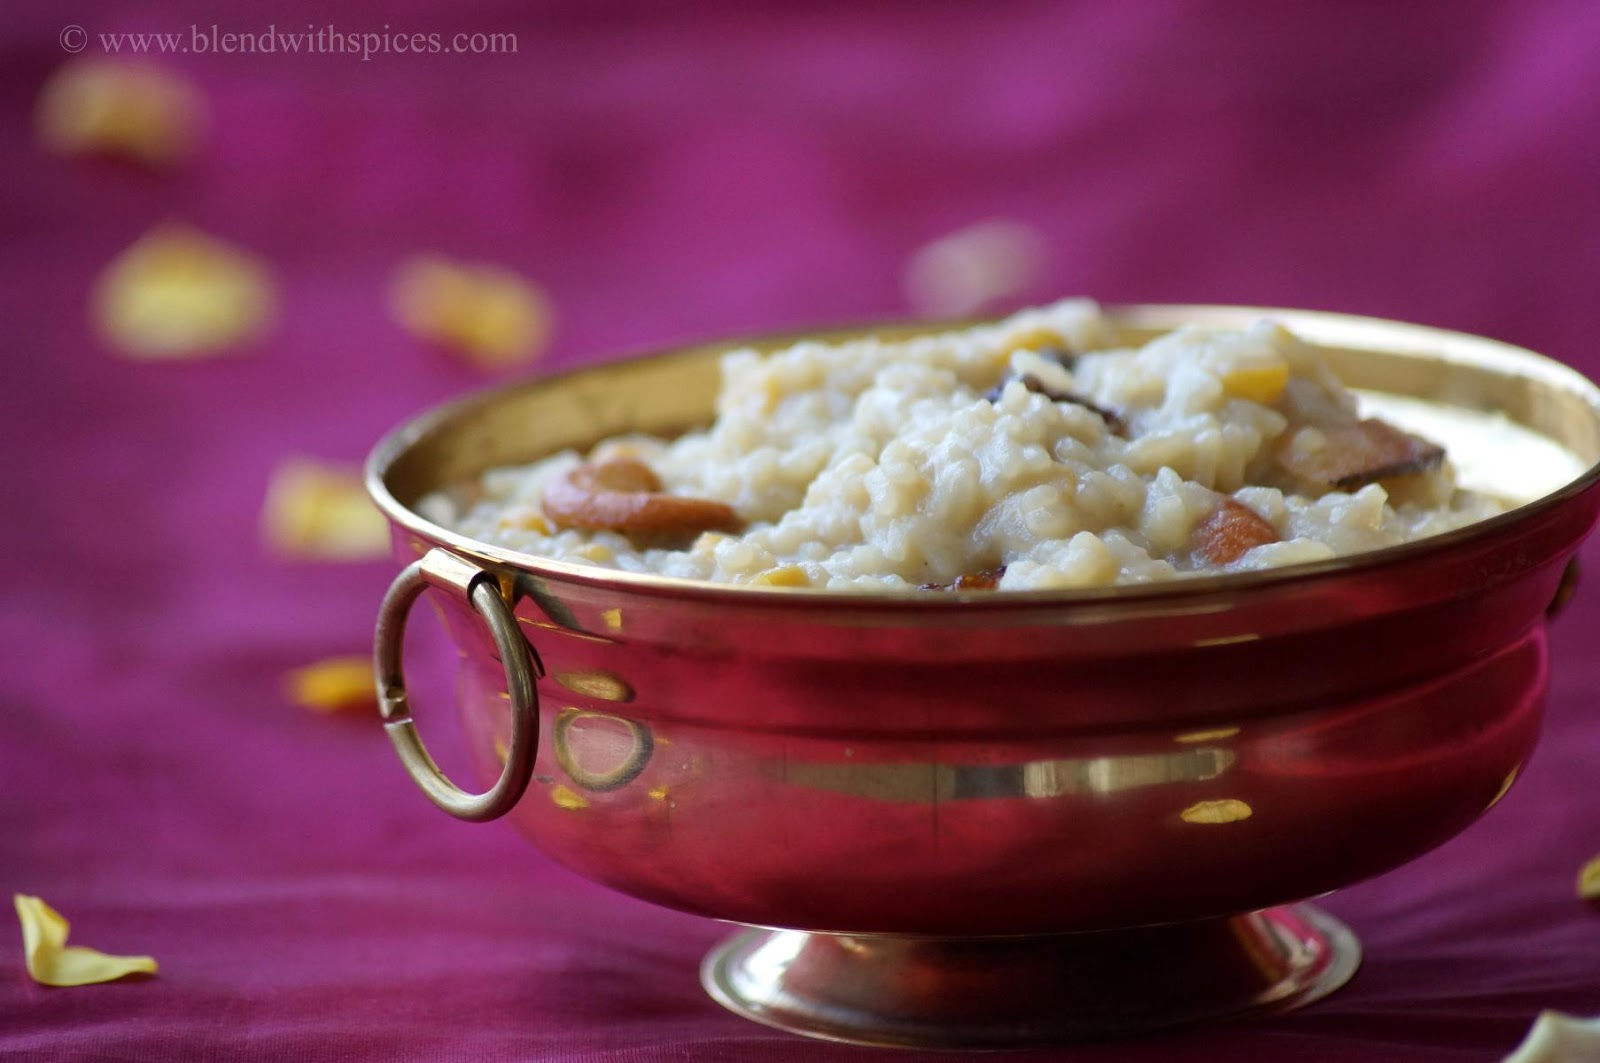 recipe of jaggery pongal, how to make jaggery pongal, sweet jaggery pongal